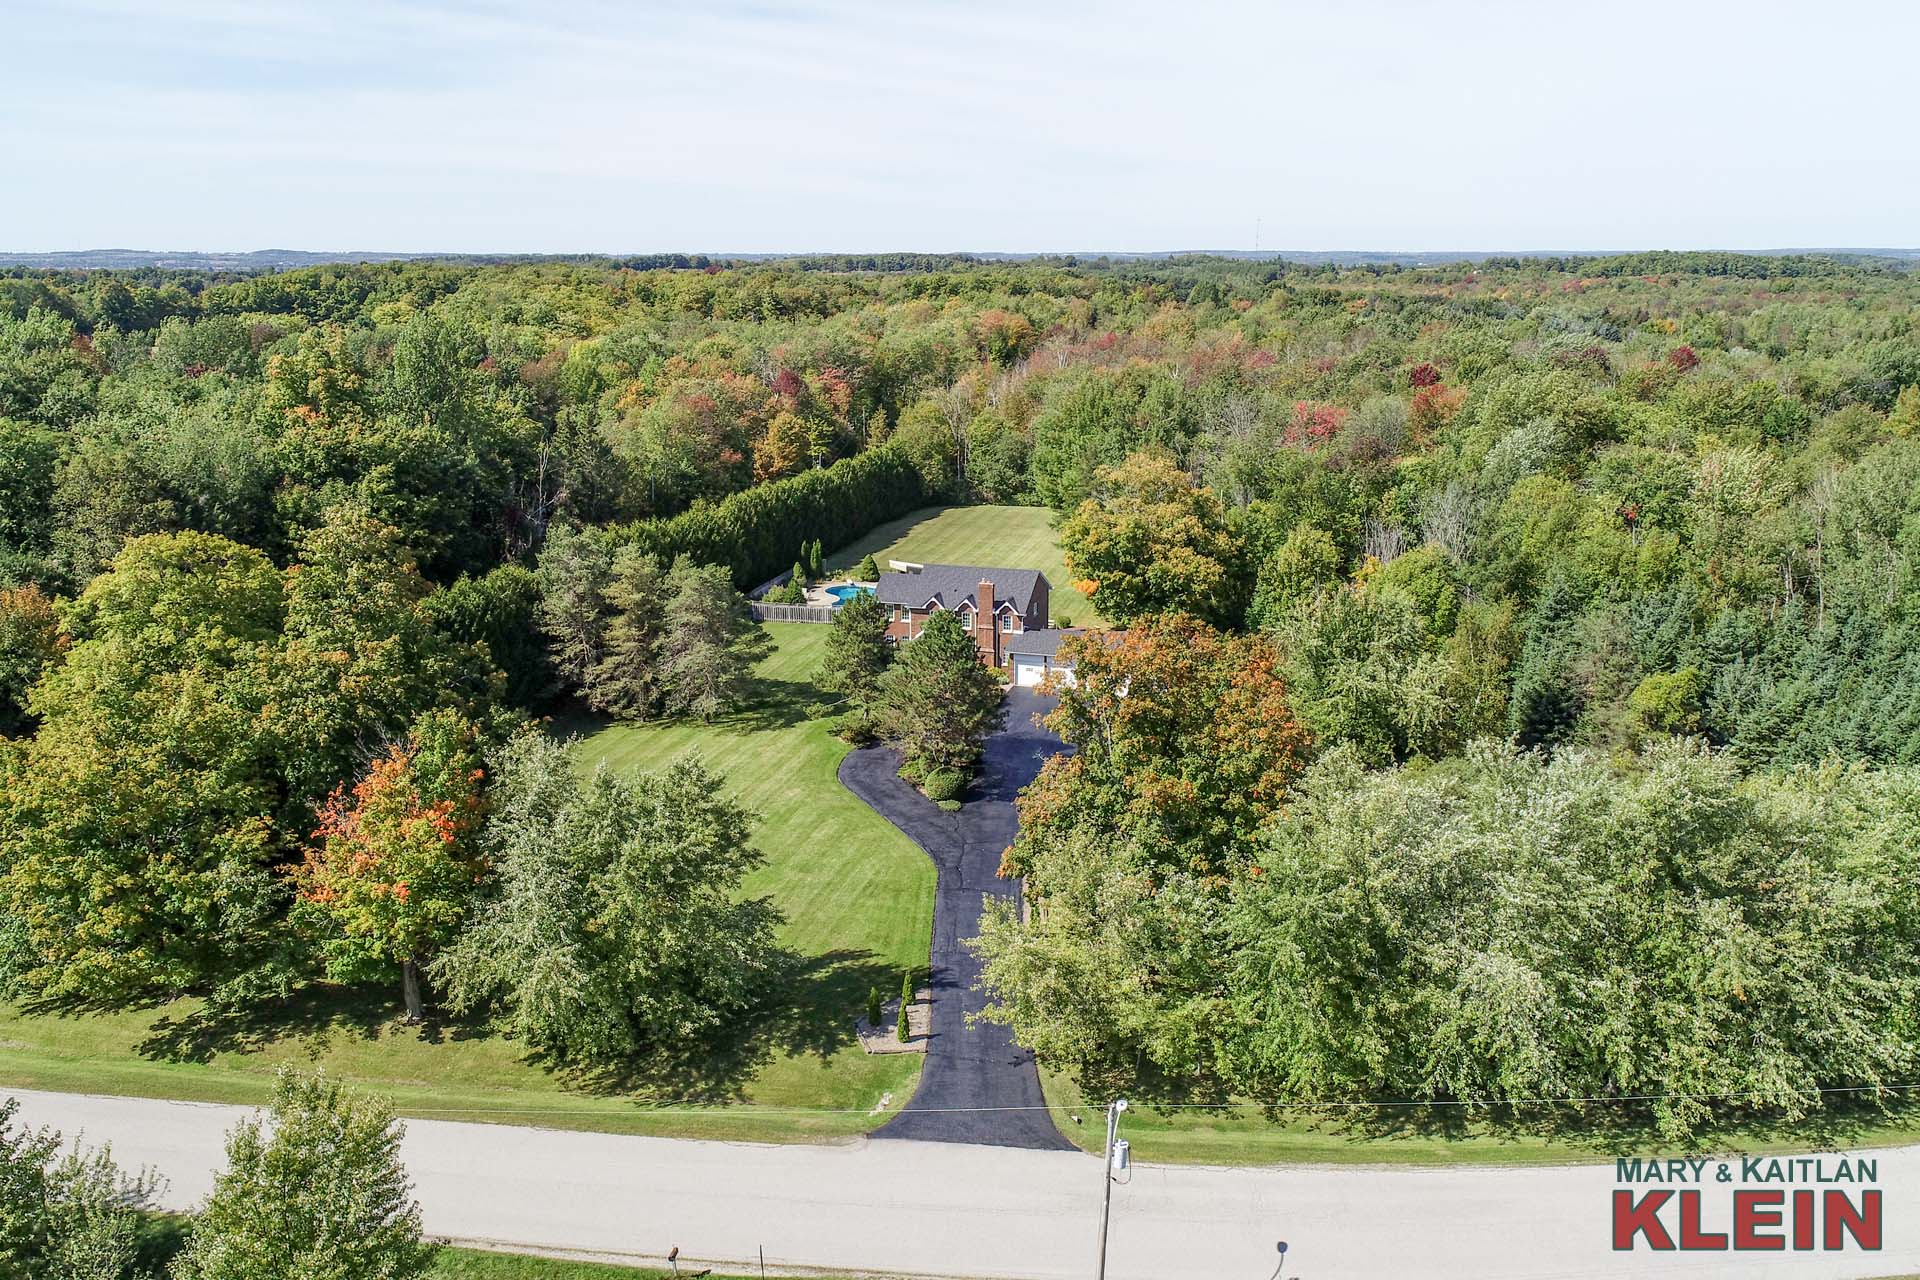 Mature Lot, 4 Bedroom Home for sale in Caledon, Kait Klein, Mary Klein